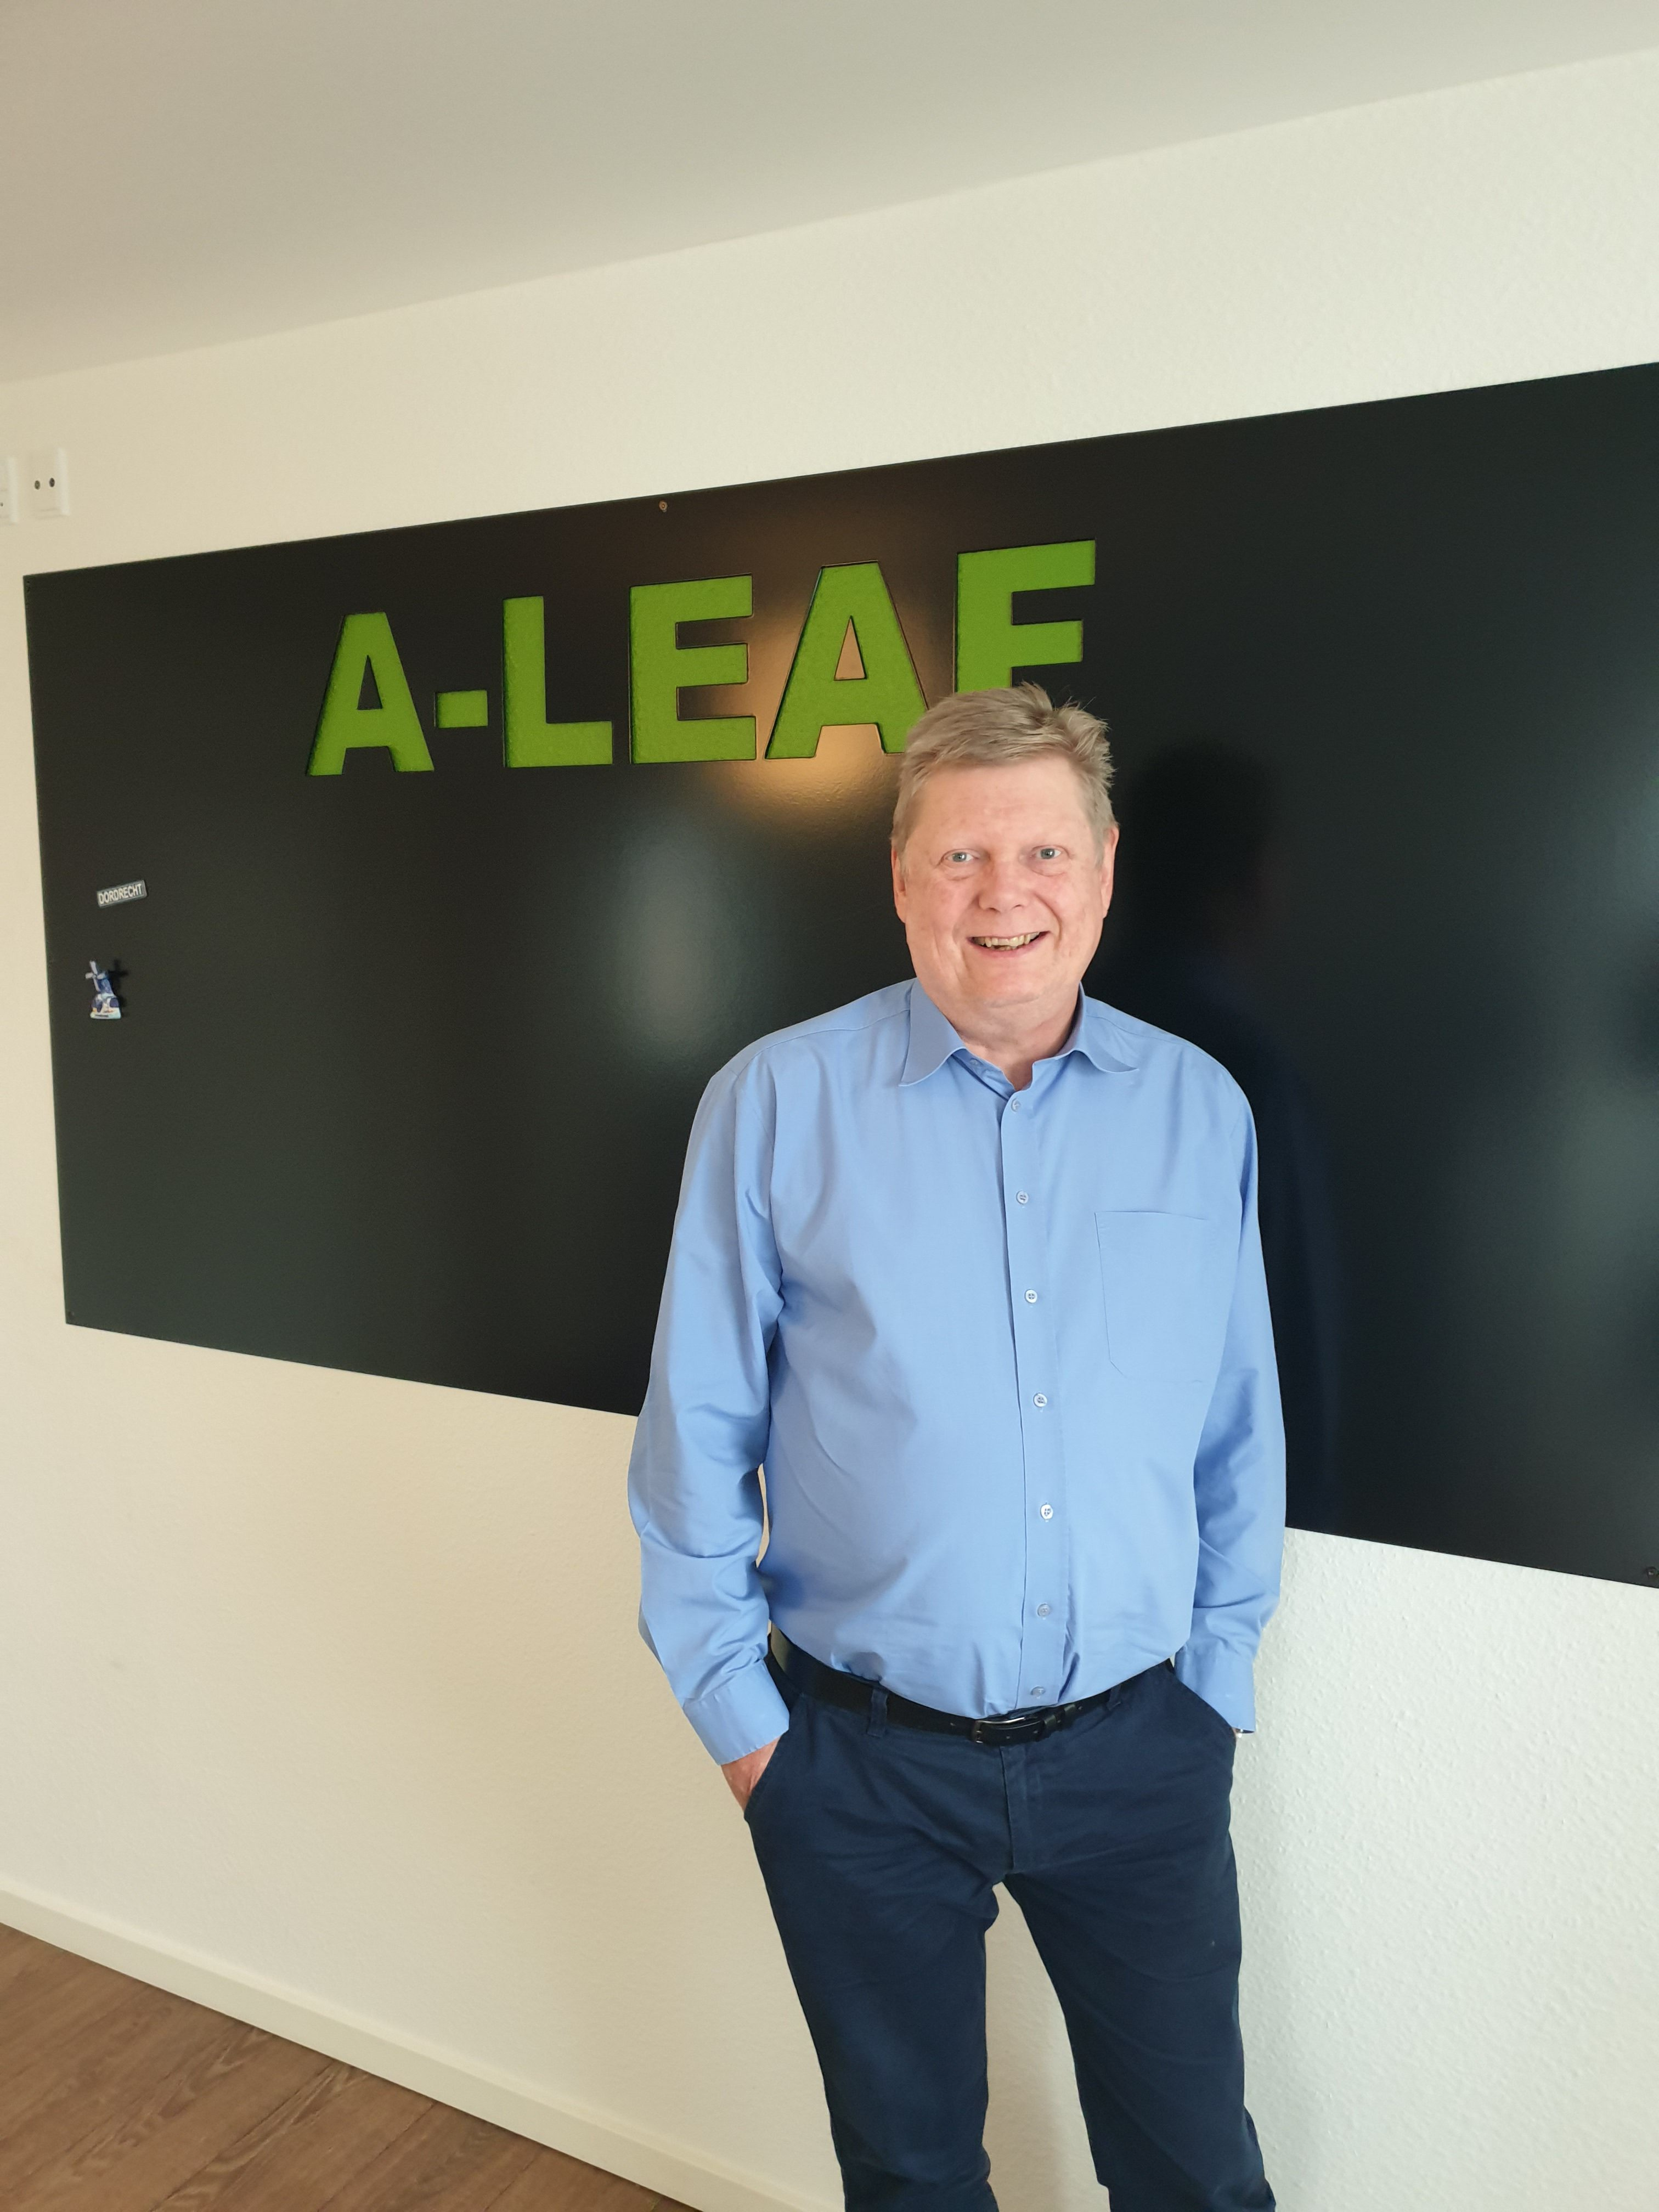 New member to the A-LEAF Team!